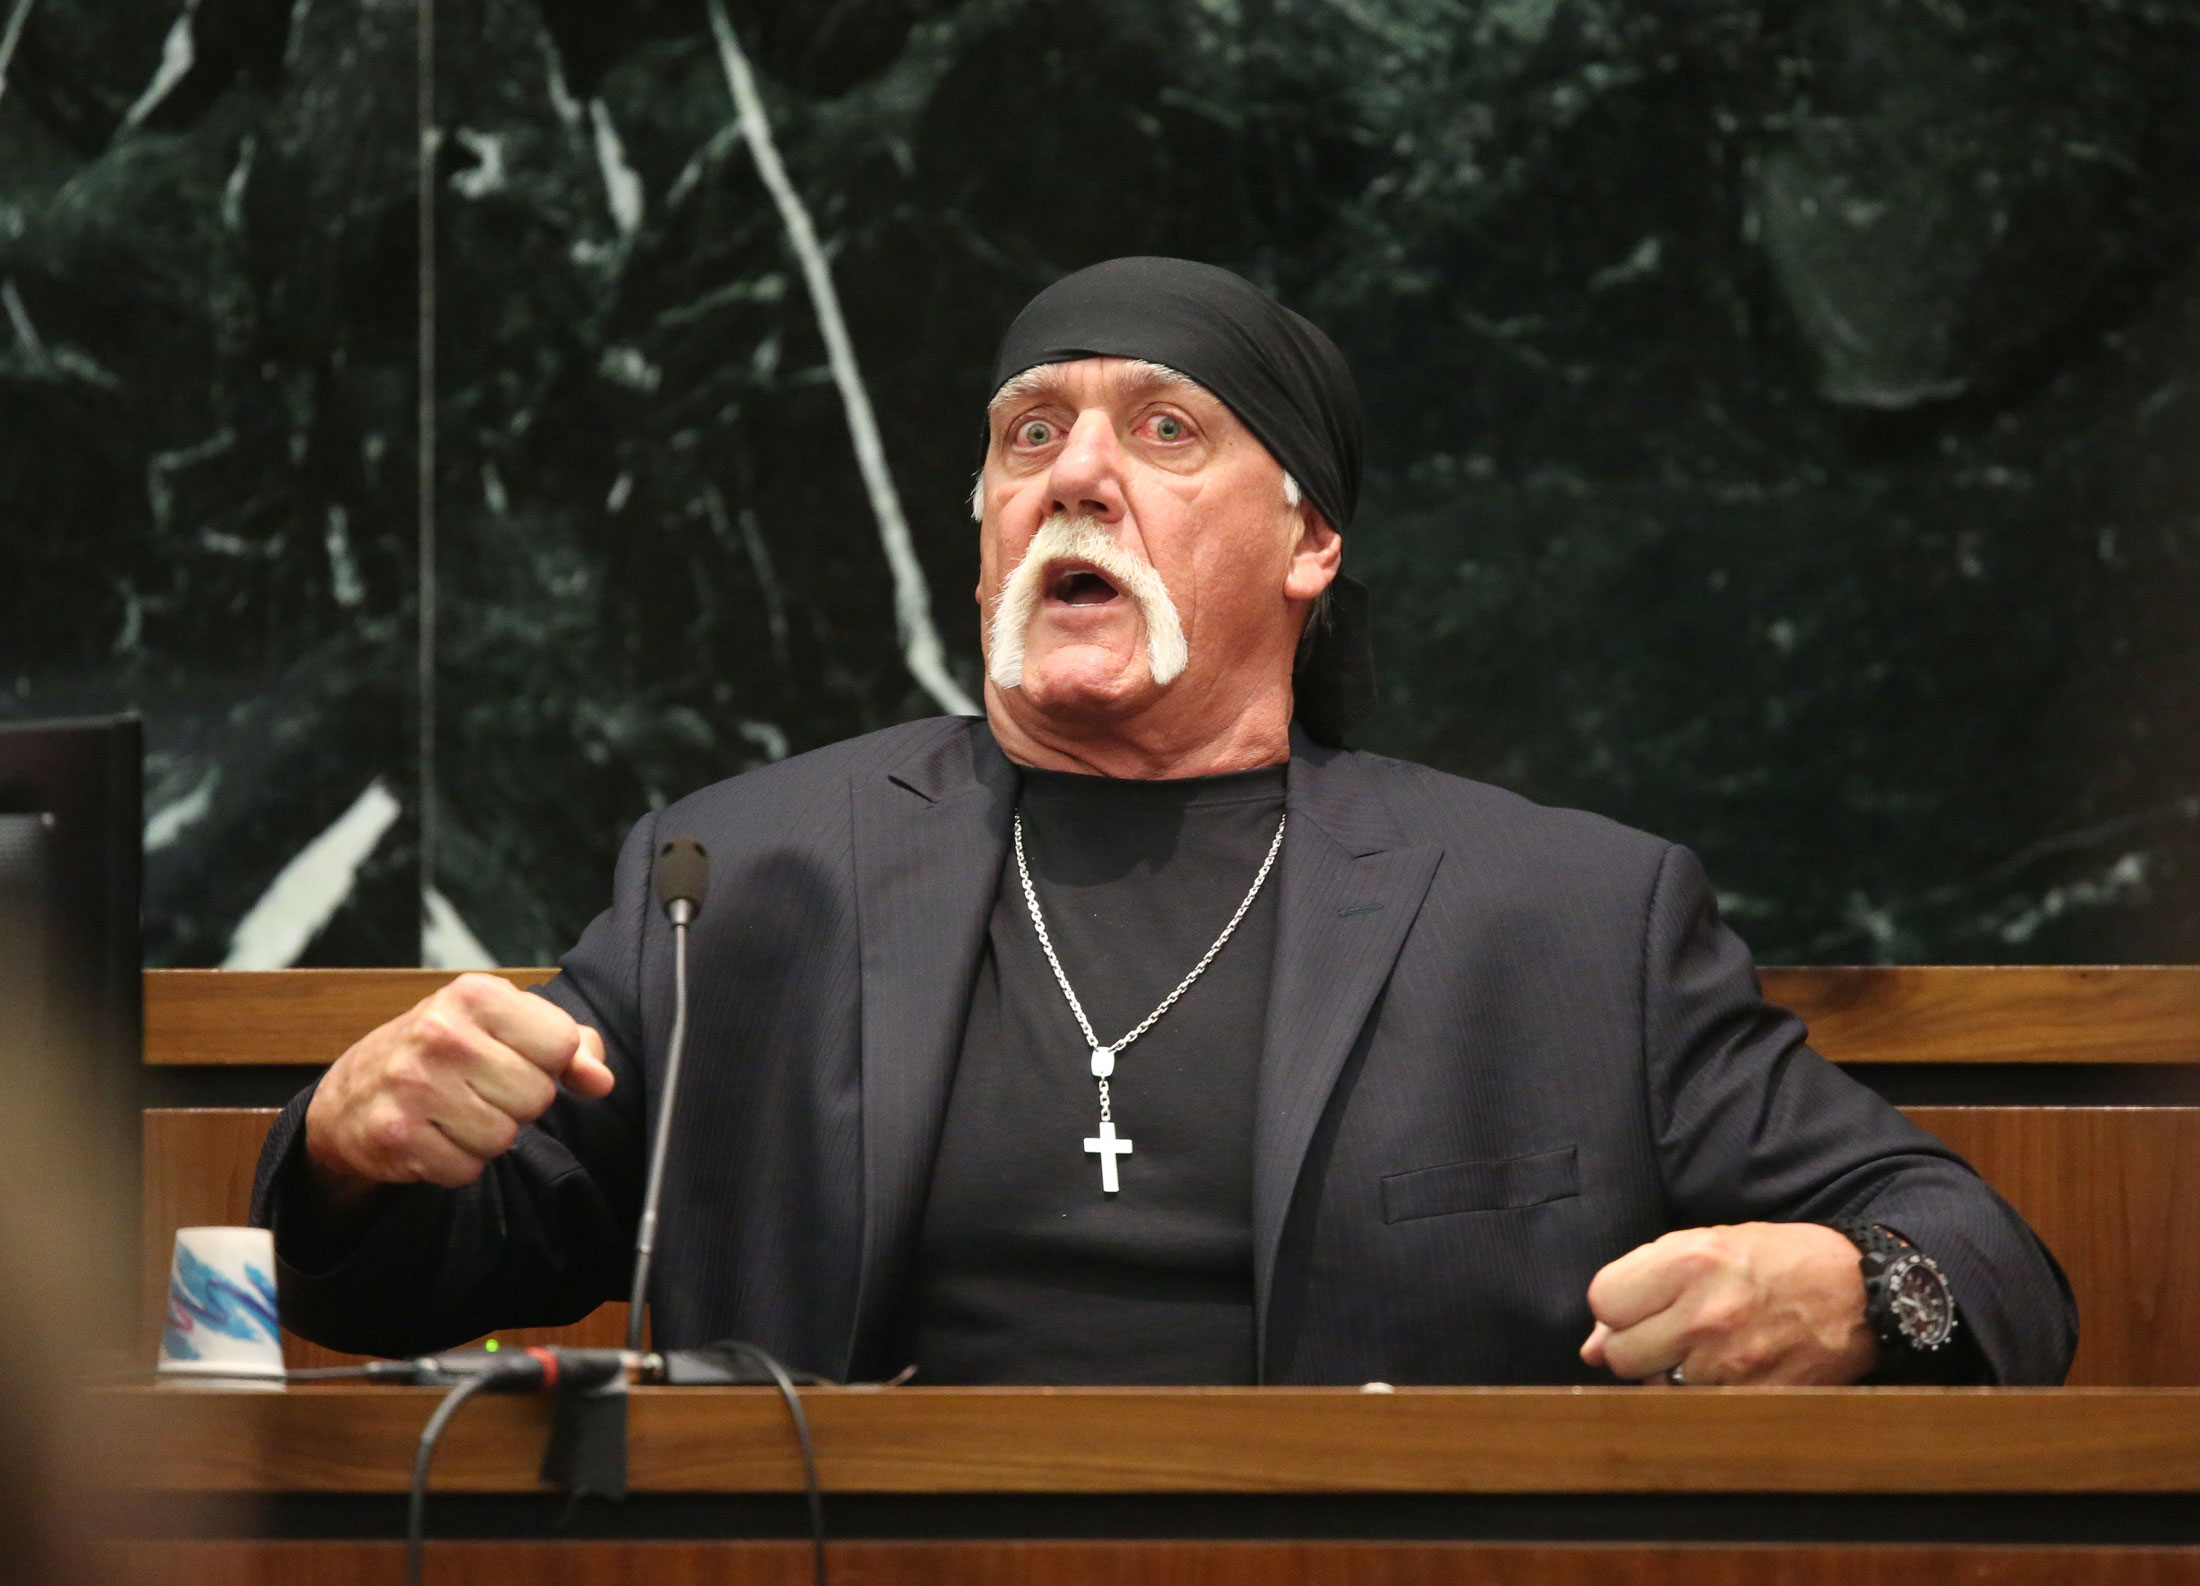 hulk hogan sex tape lawsuit 115 million settlement